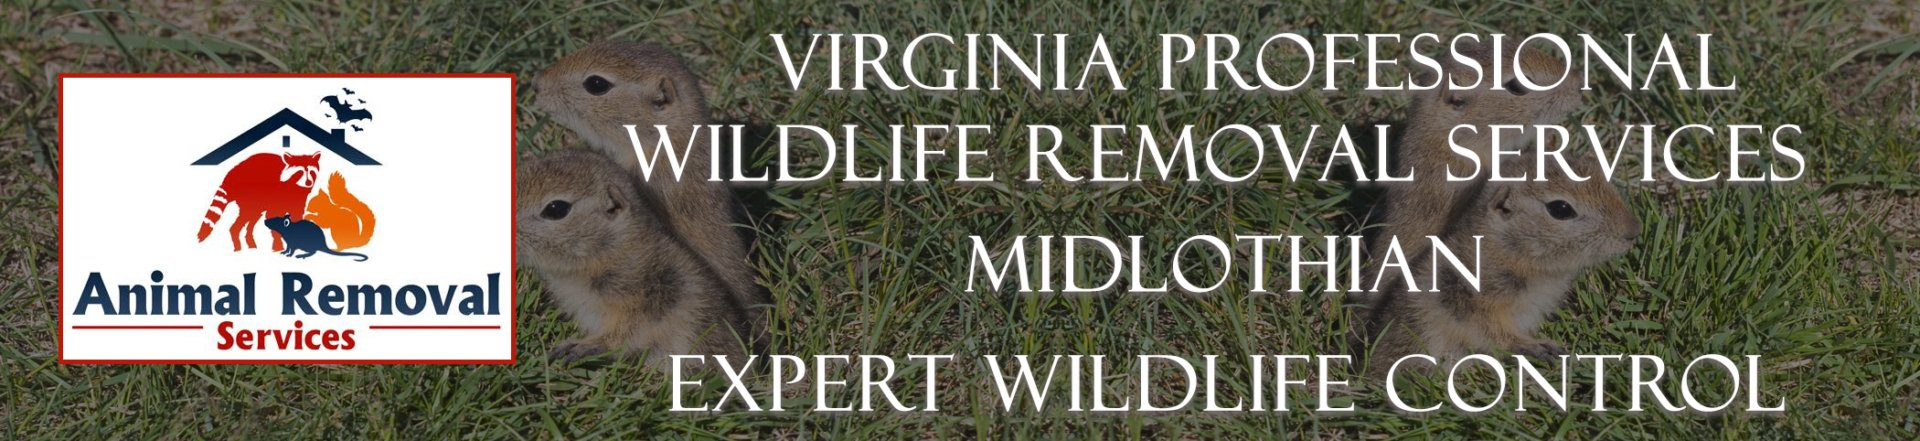 midlothian virginia bat removal